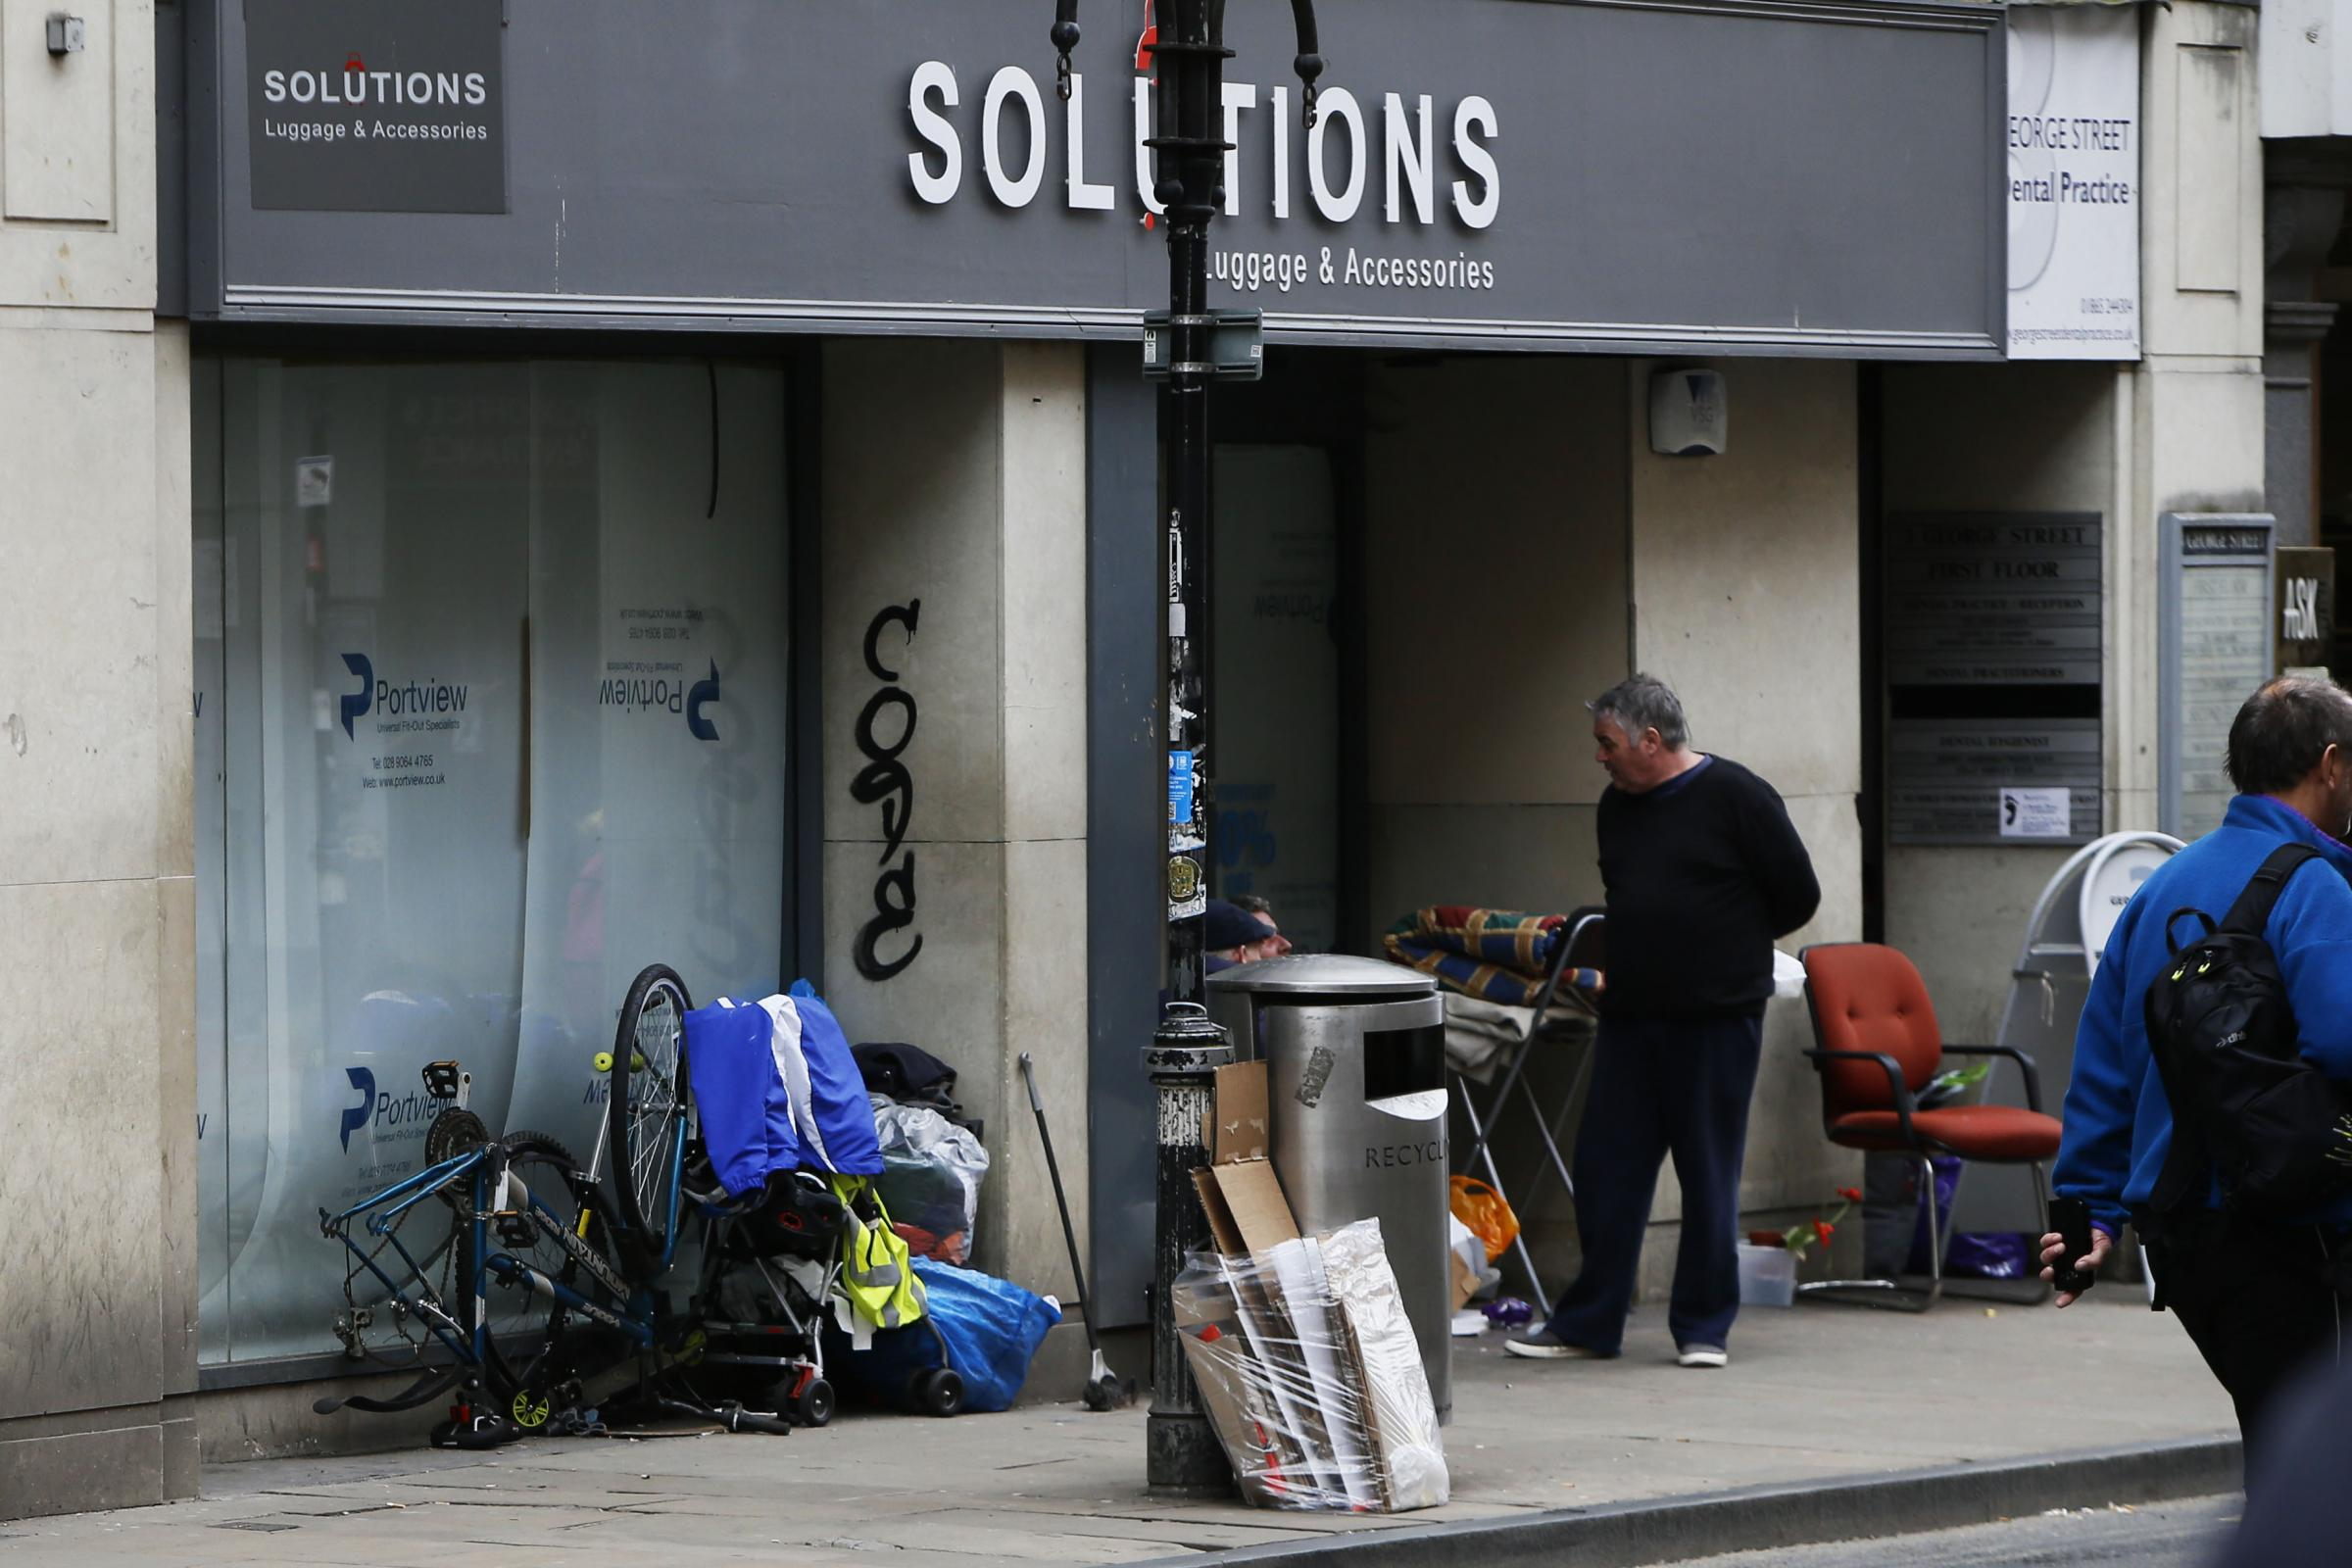 Rough sleepers have been using the doorway of the former Solutions store in George Street  in Oxford as a place to gather and sleep.